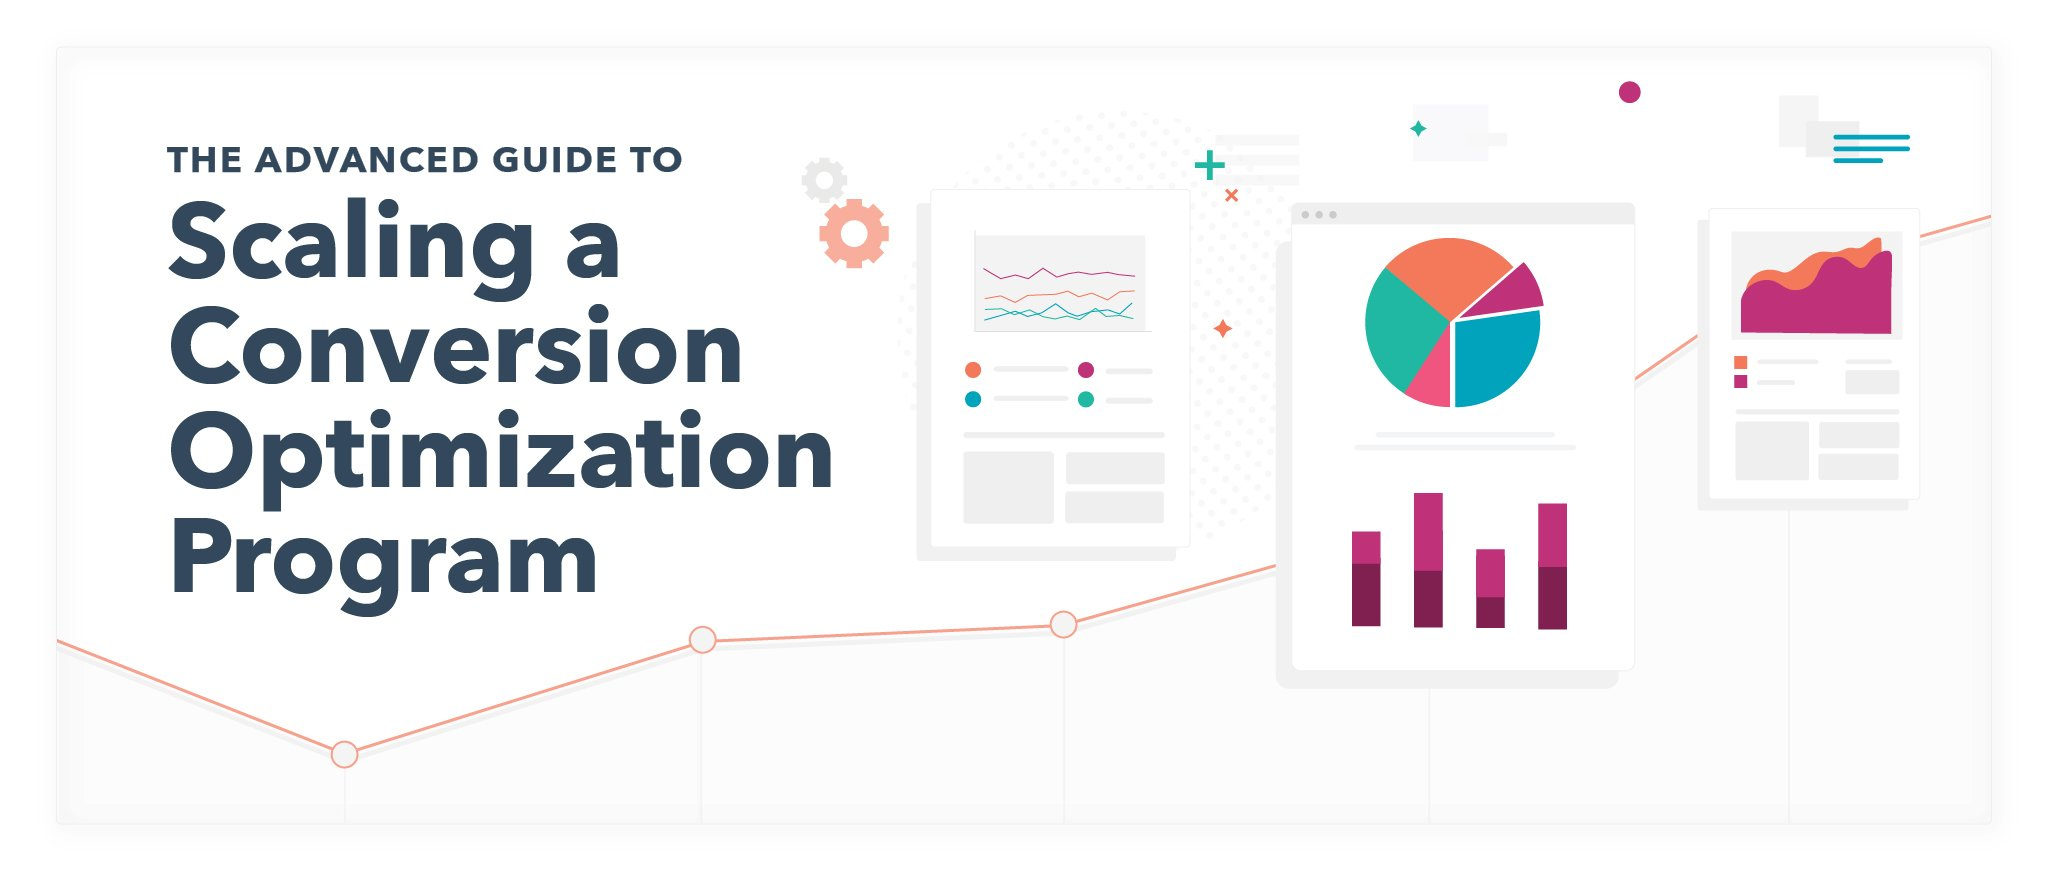 The Advanced Guide to Scaling a Conversion Optimization Program